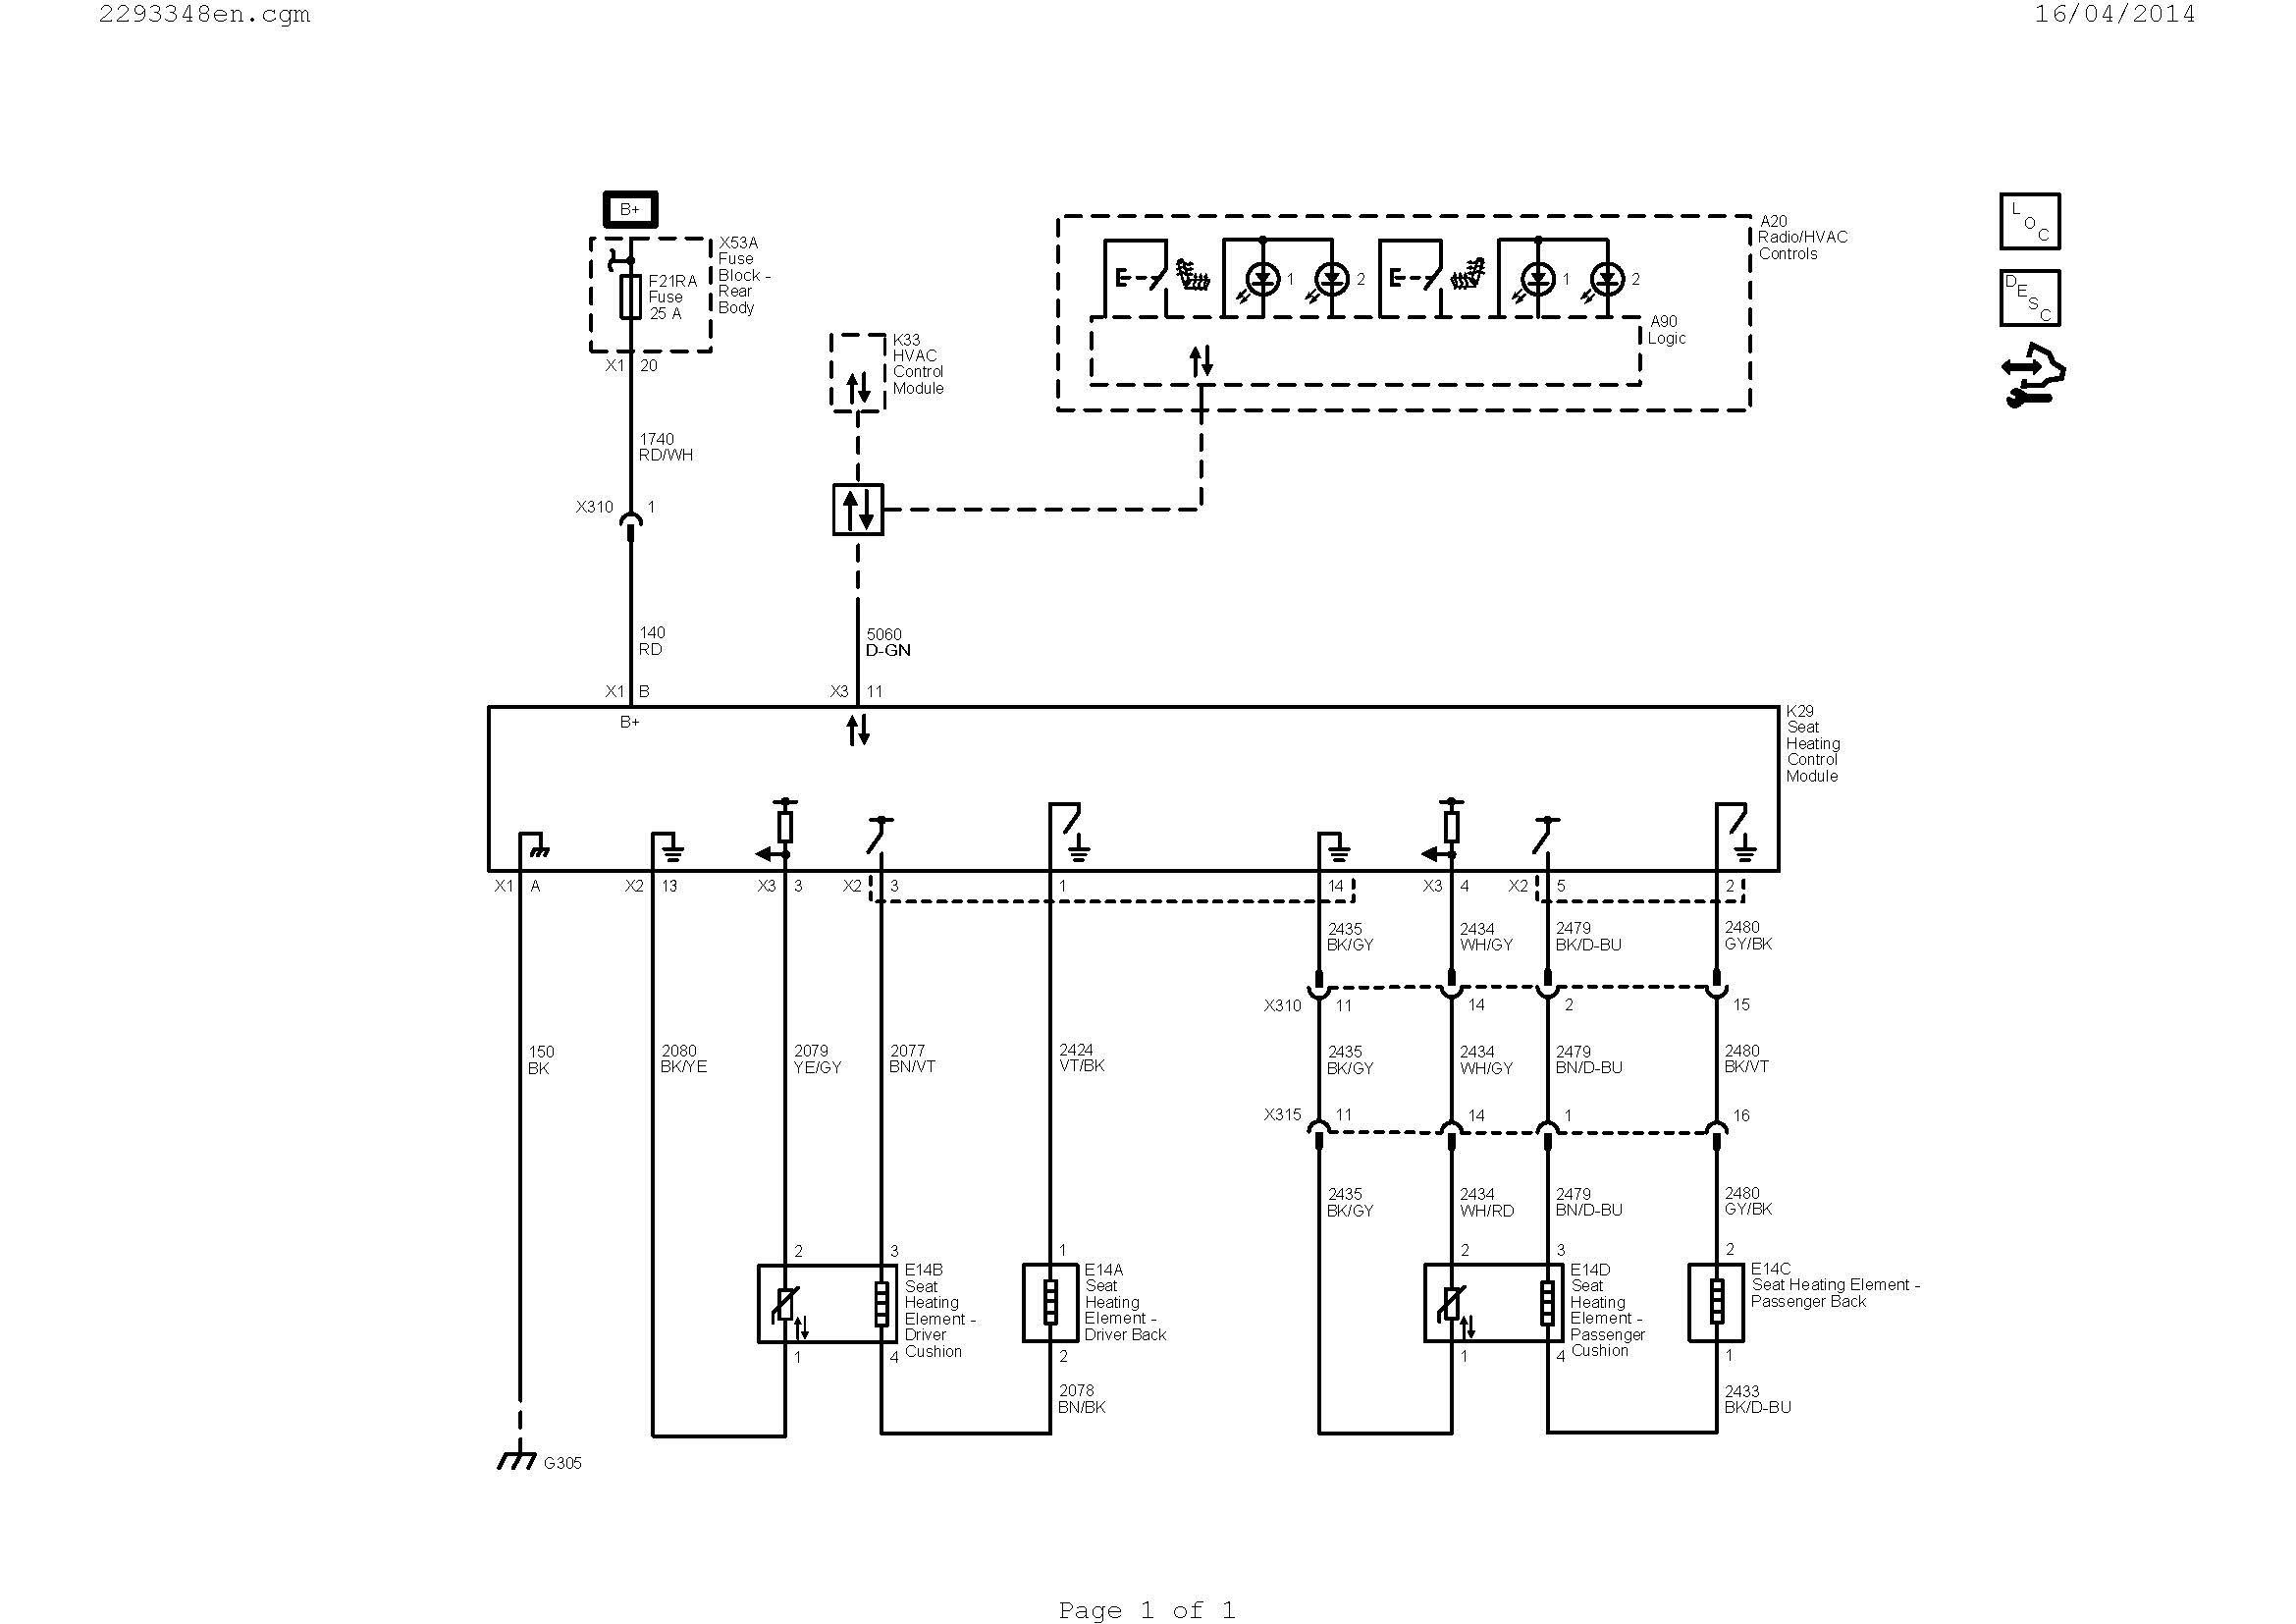 infratech heater wiring diagram Collection-electrical wiring diagram Download Wiring Diagrams for Electrical New Wiring Diagram Guitar Fresh Hvac Diagram DOWNLOAD Wiring Diagram 15-r